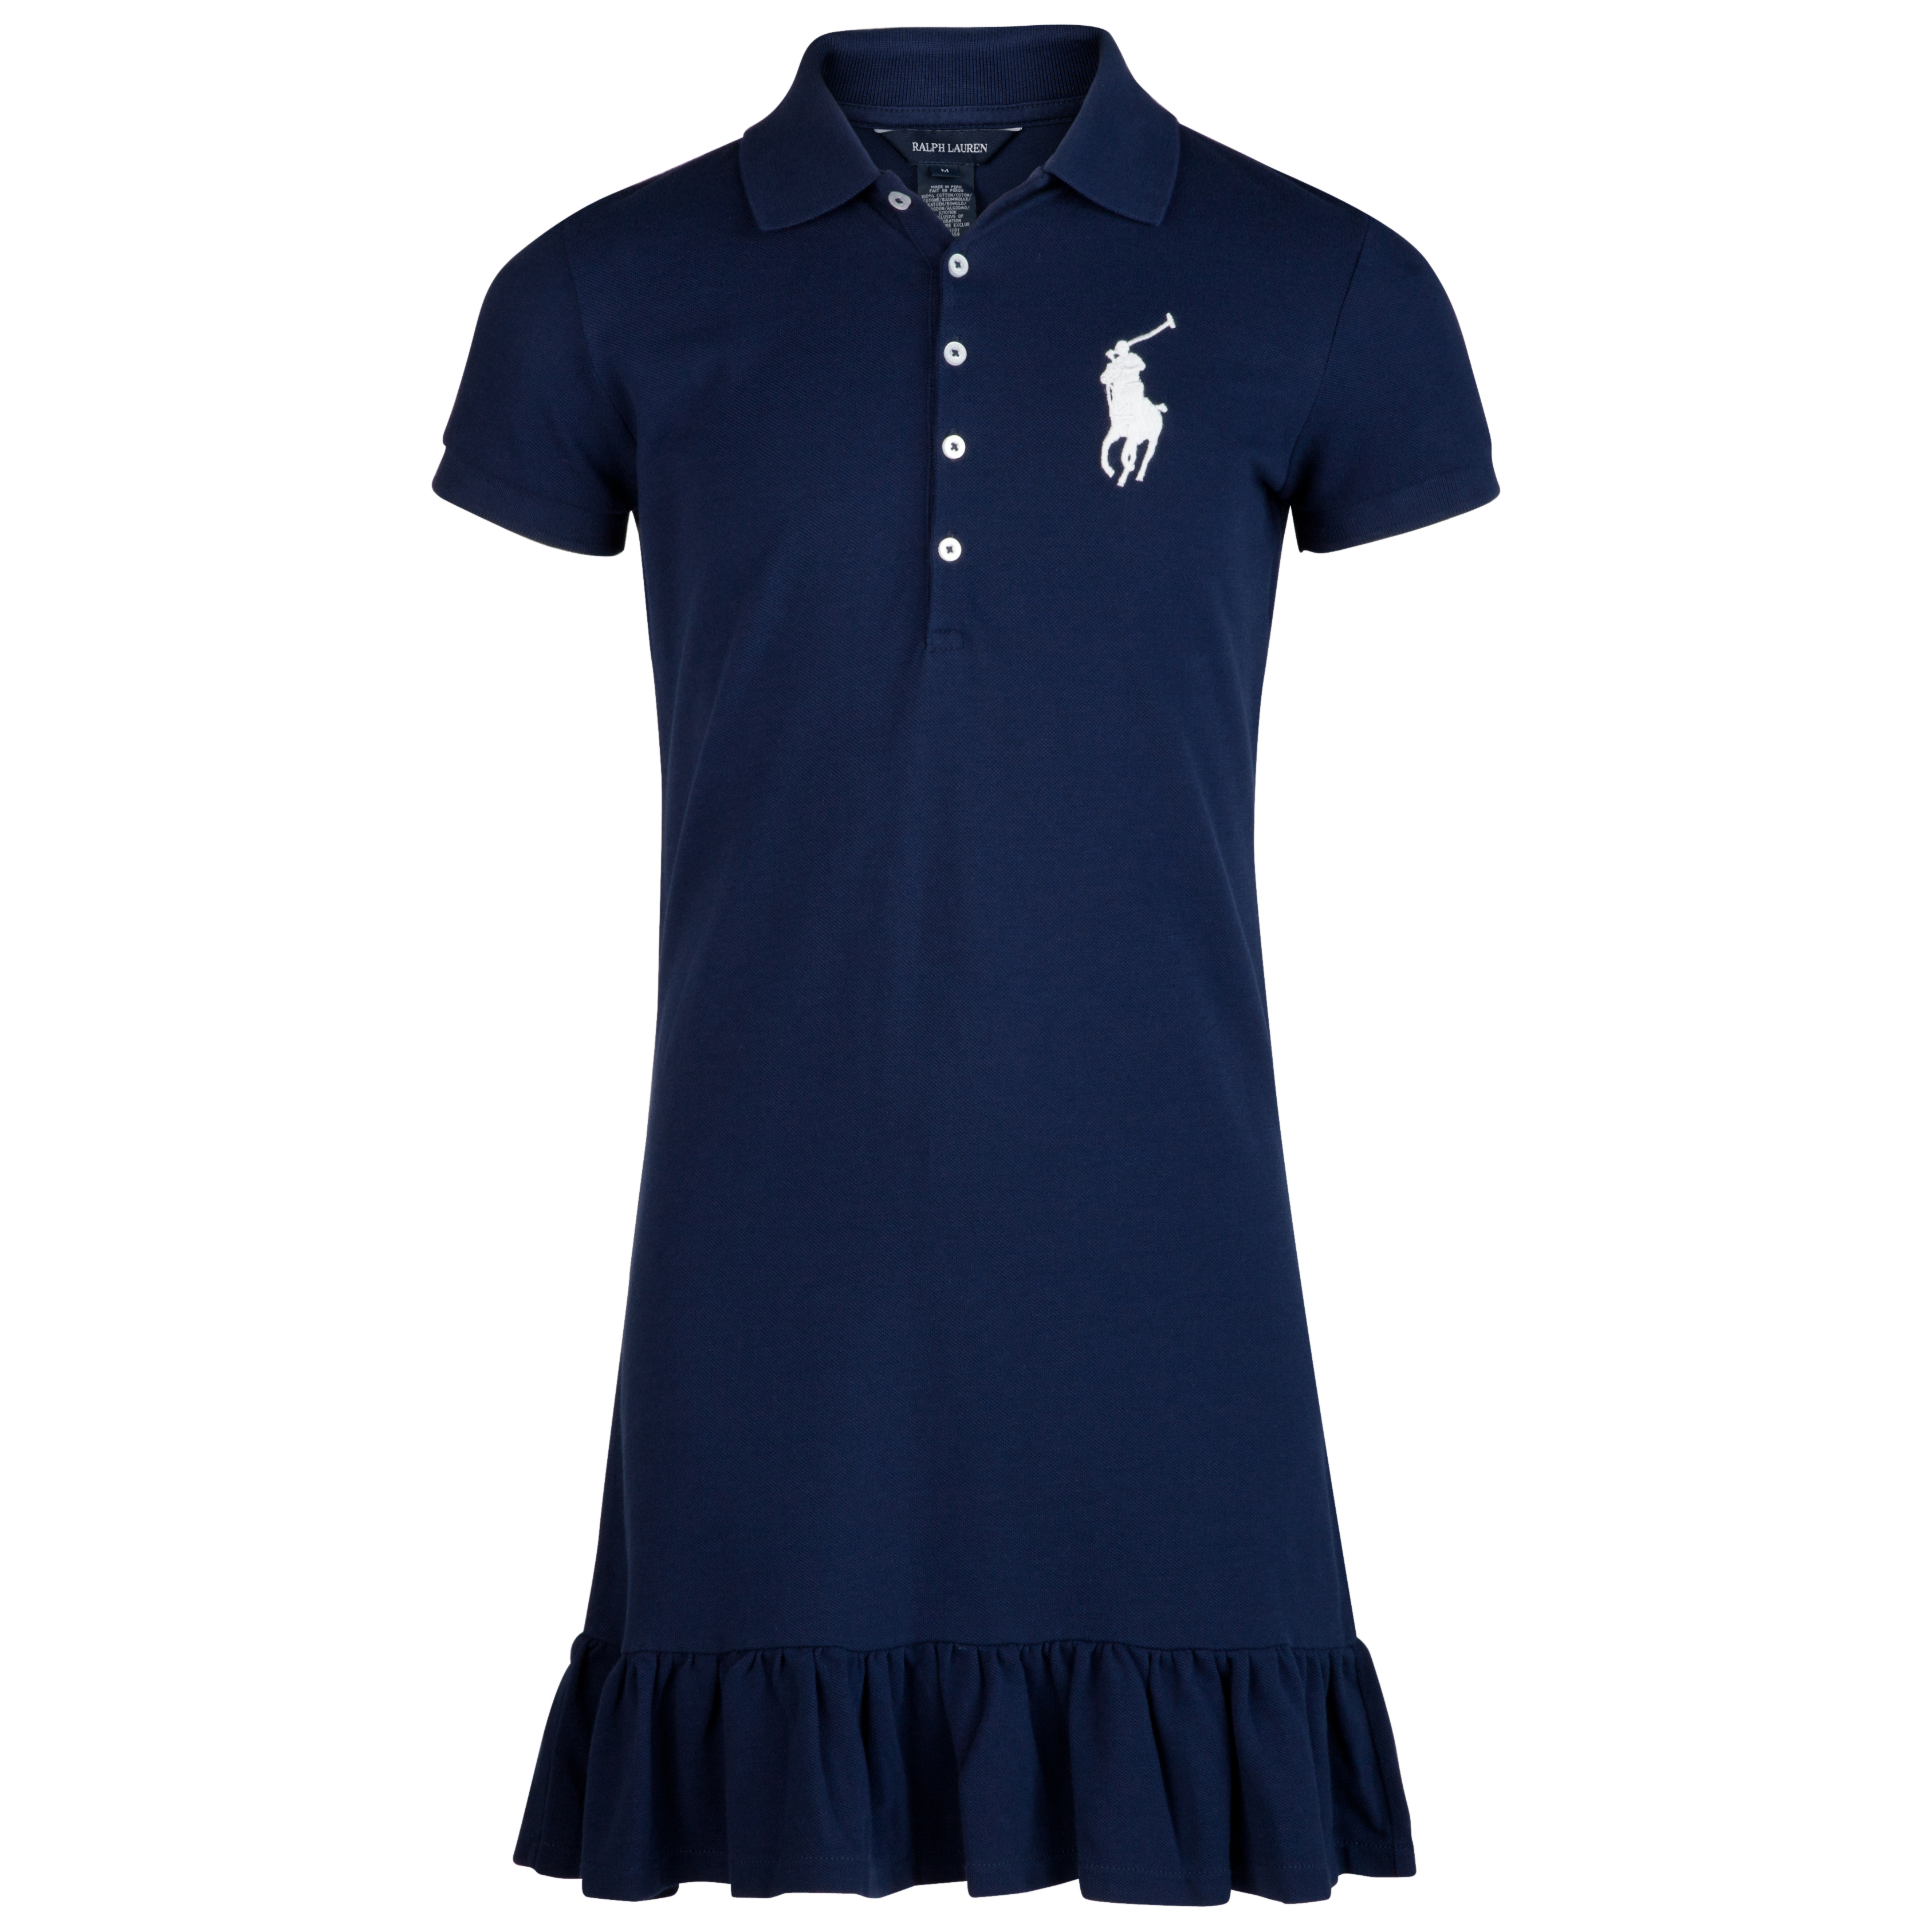 Polo Ralph Lauren Polo Polo Dress Mesh - French Navy - Infant Girls